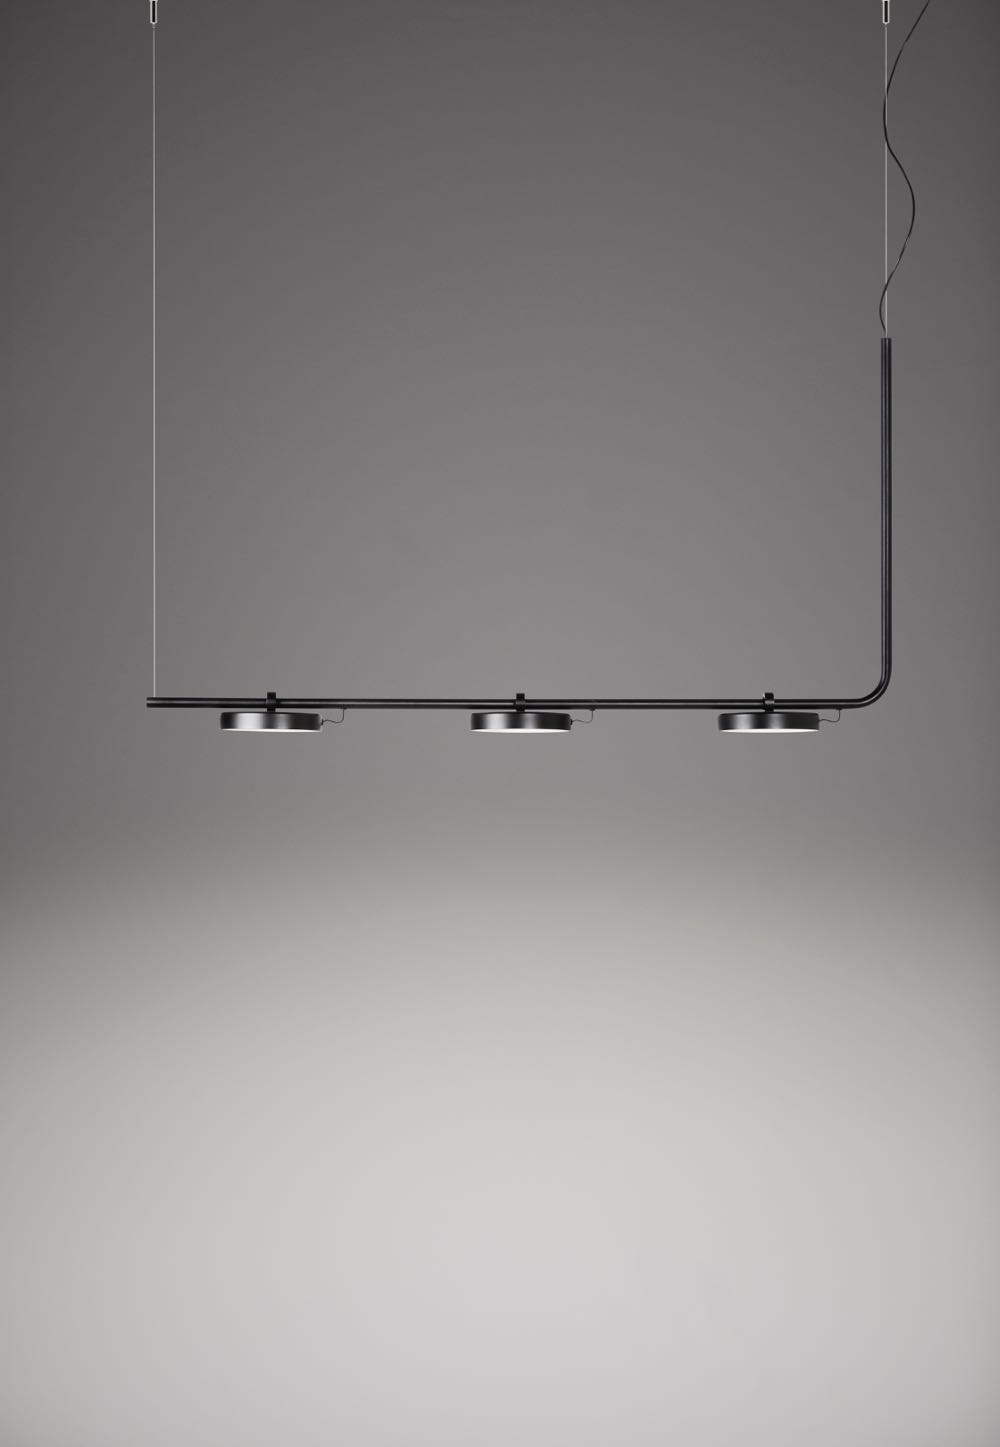 The 'Aro' 3541 pendant from Estiluz.